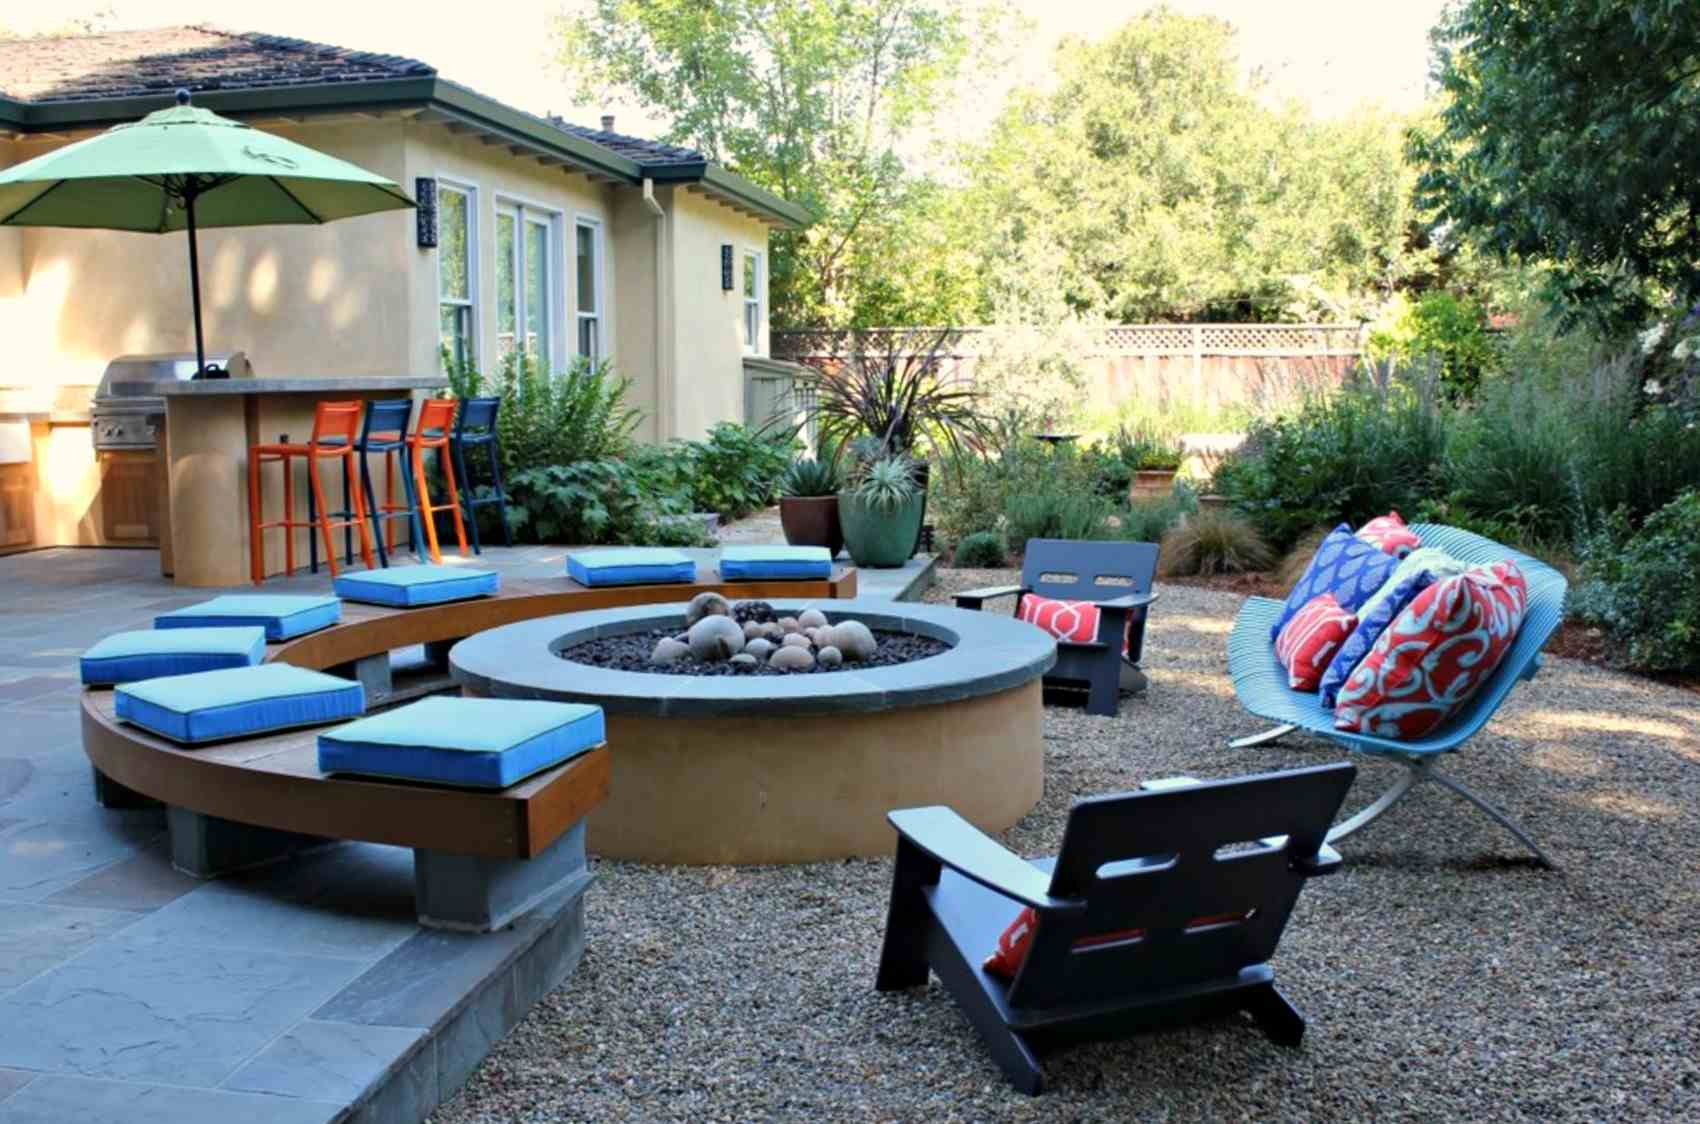 49 Backyard Landscaping Ideas To Inspire You